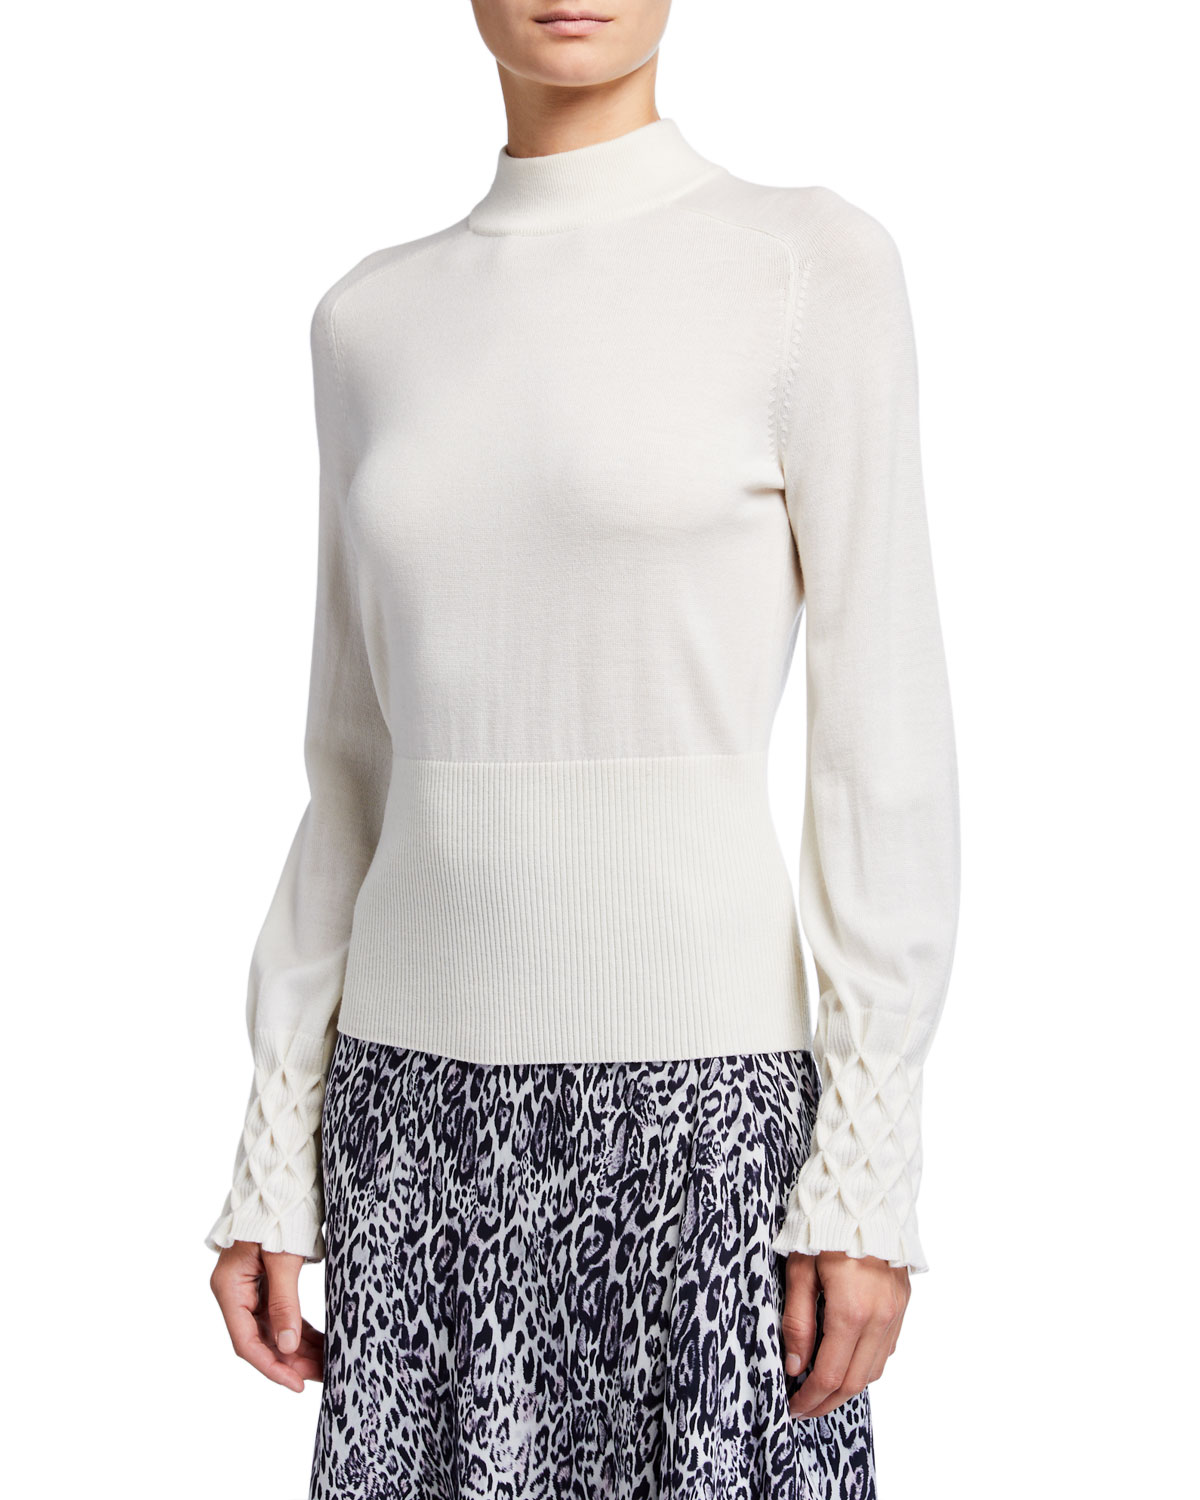 Elie Tahari Sweaters SKYLAR MOCK-NECK TEXTURED CUFF MERINO WOOL SWEATER